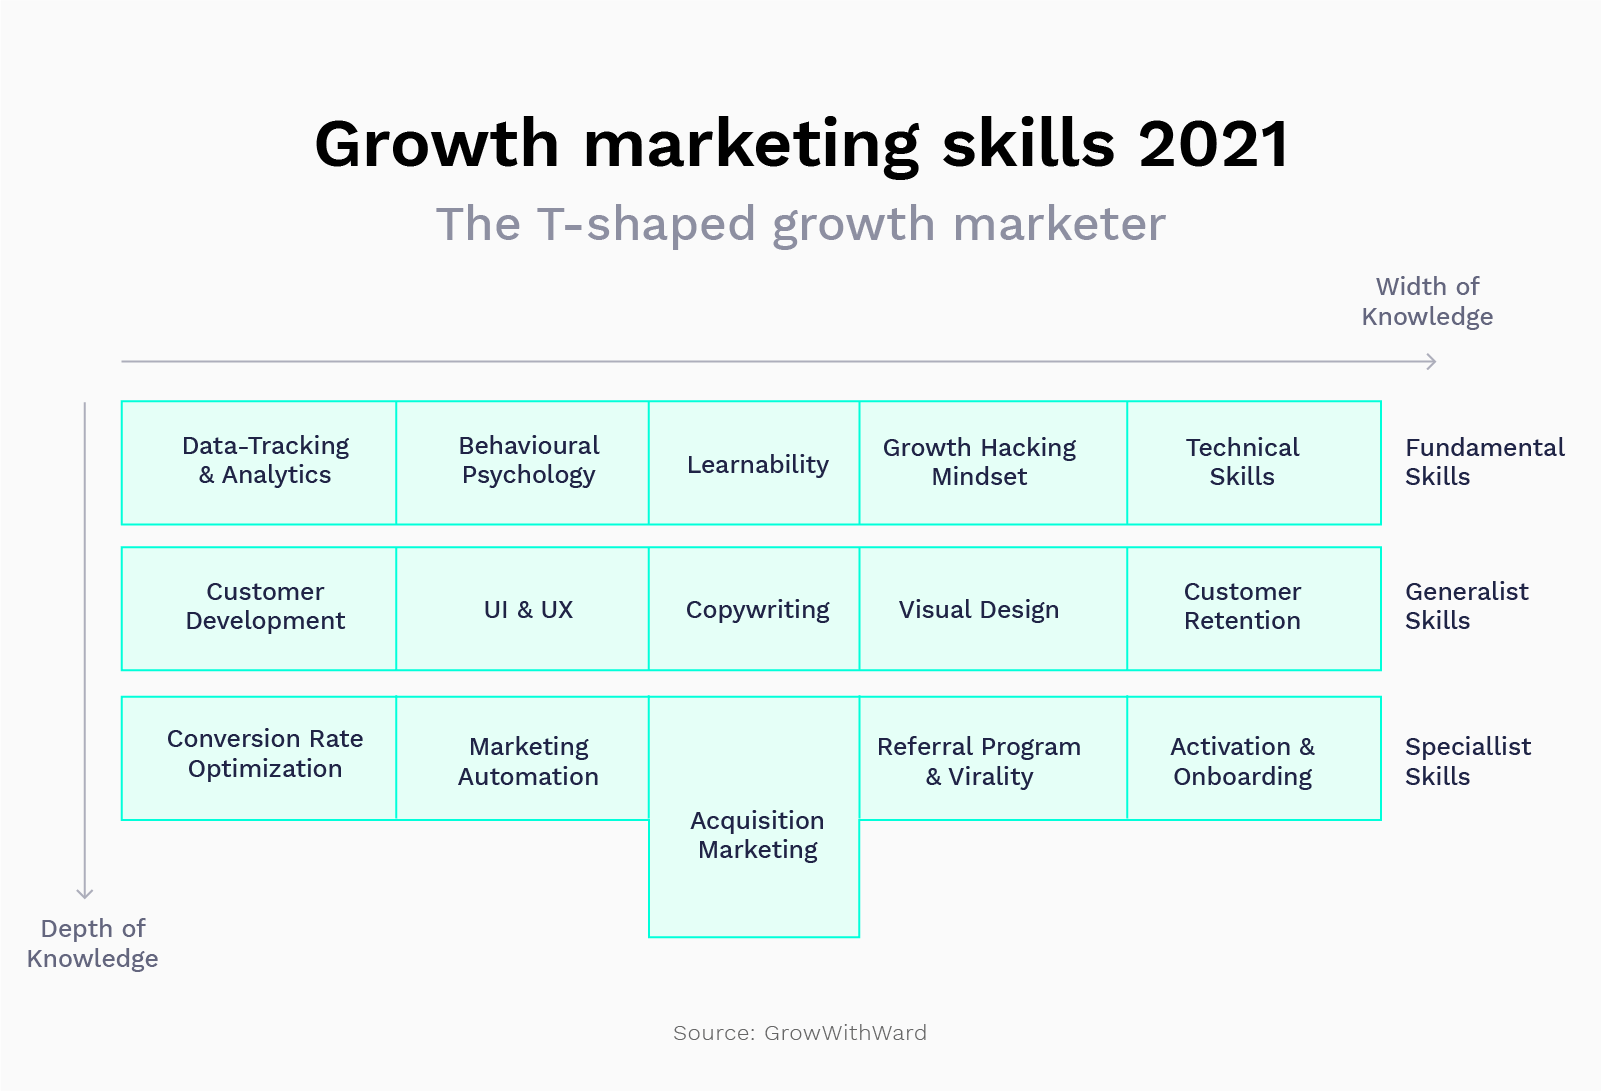 Growth marketing skills 2021